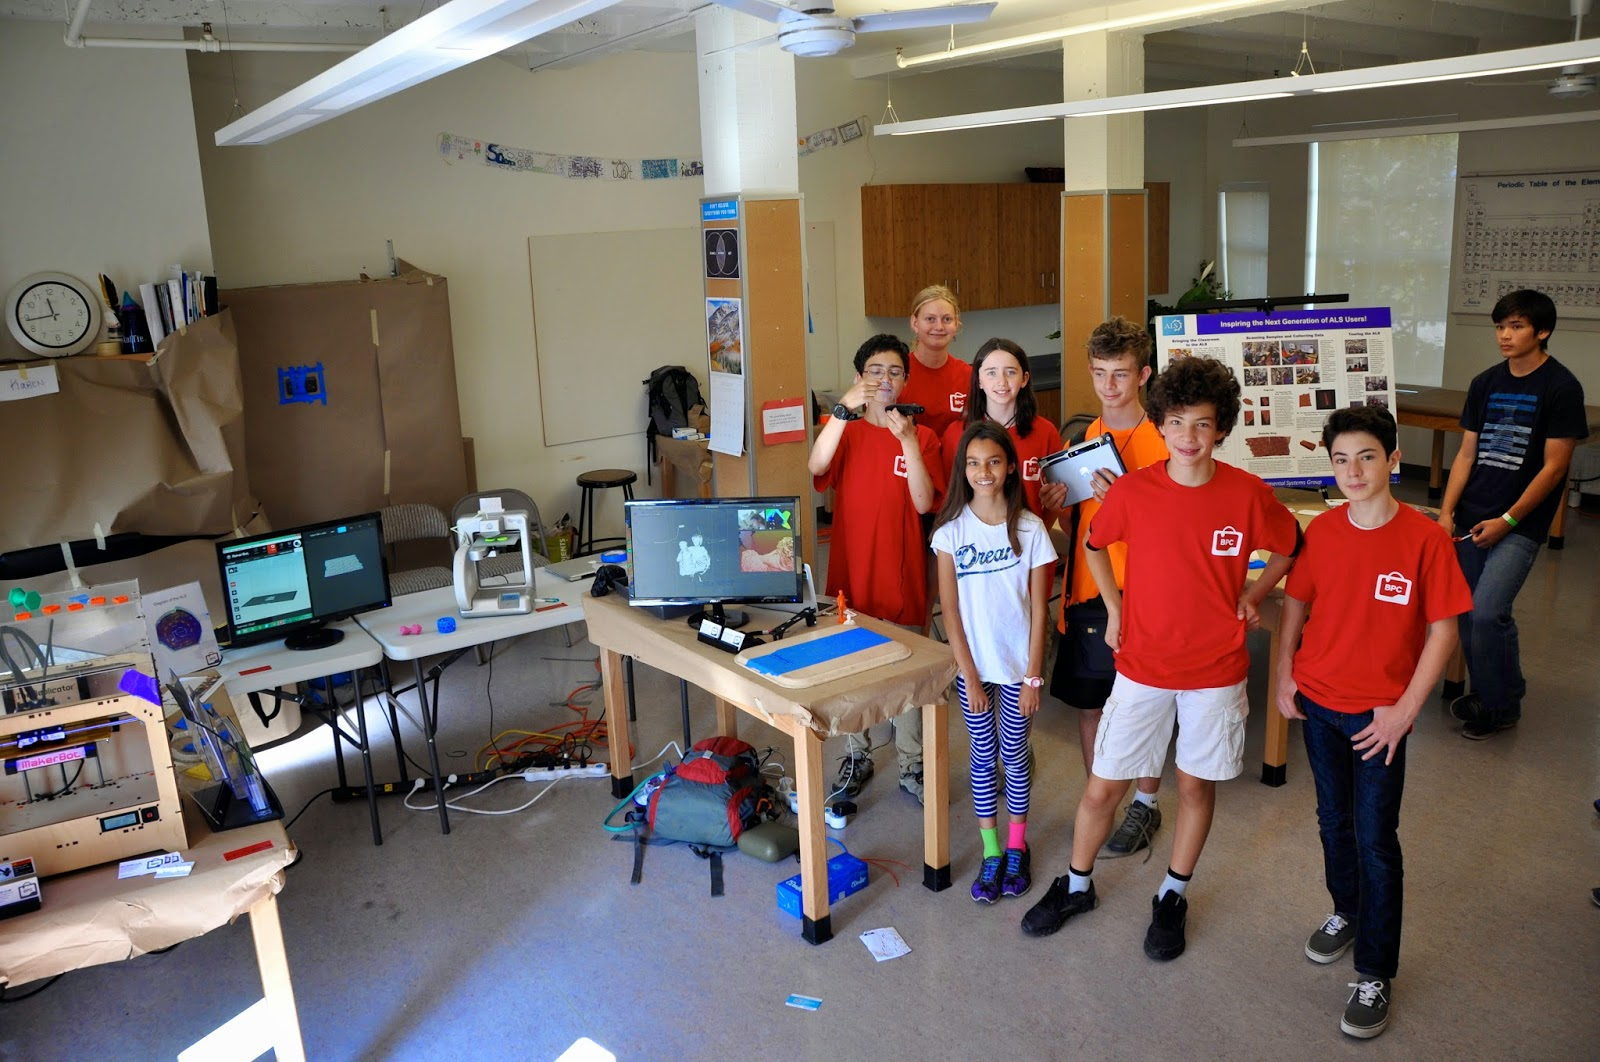 East Bay Mini >> Tales Of A 3d Printer Greetings From The East Bay Mini